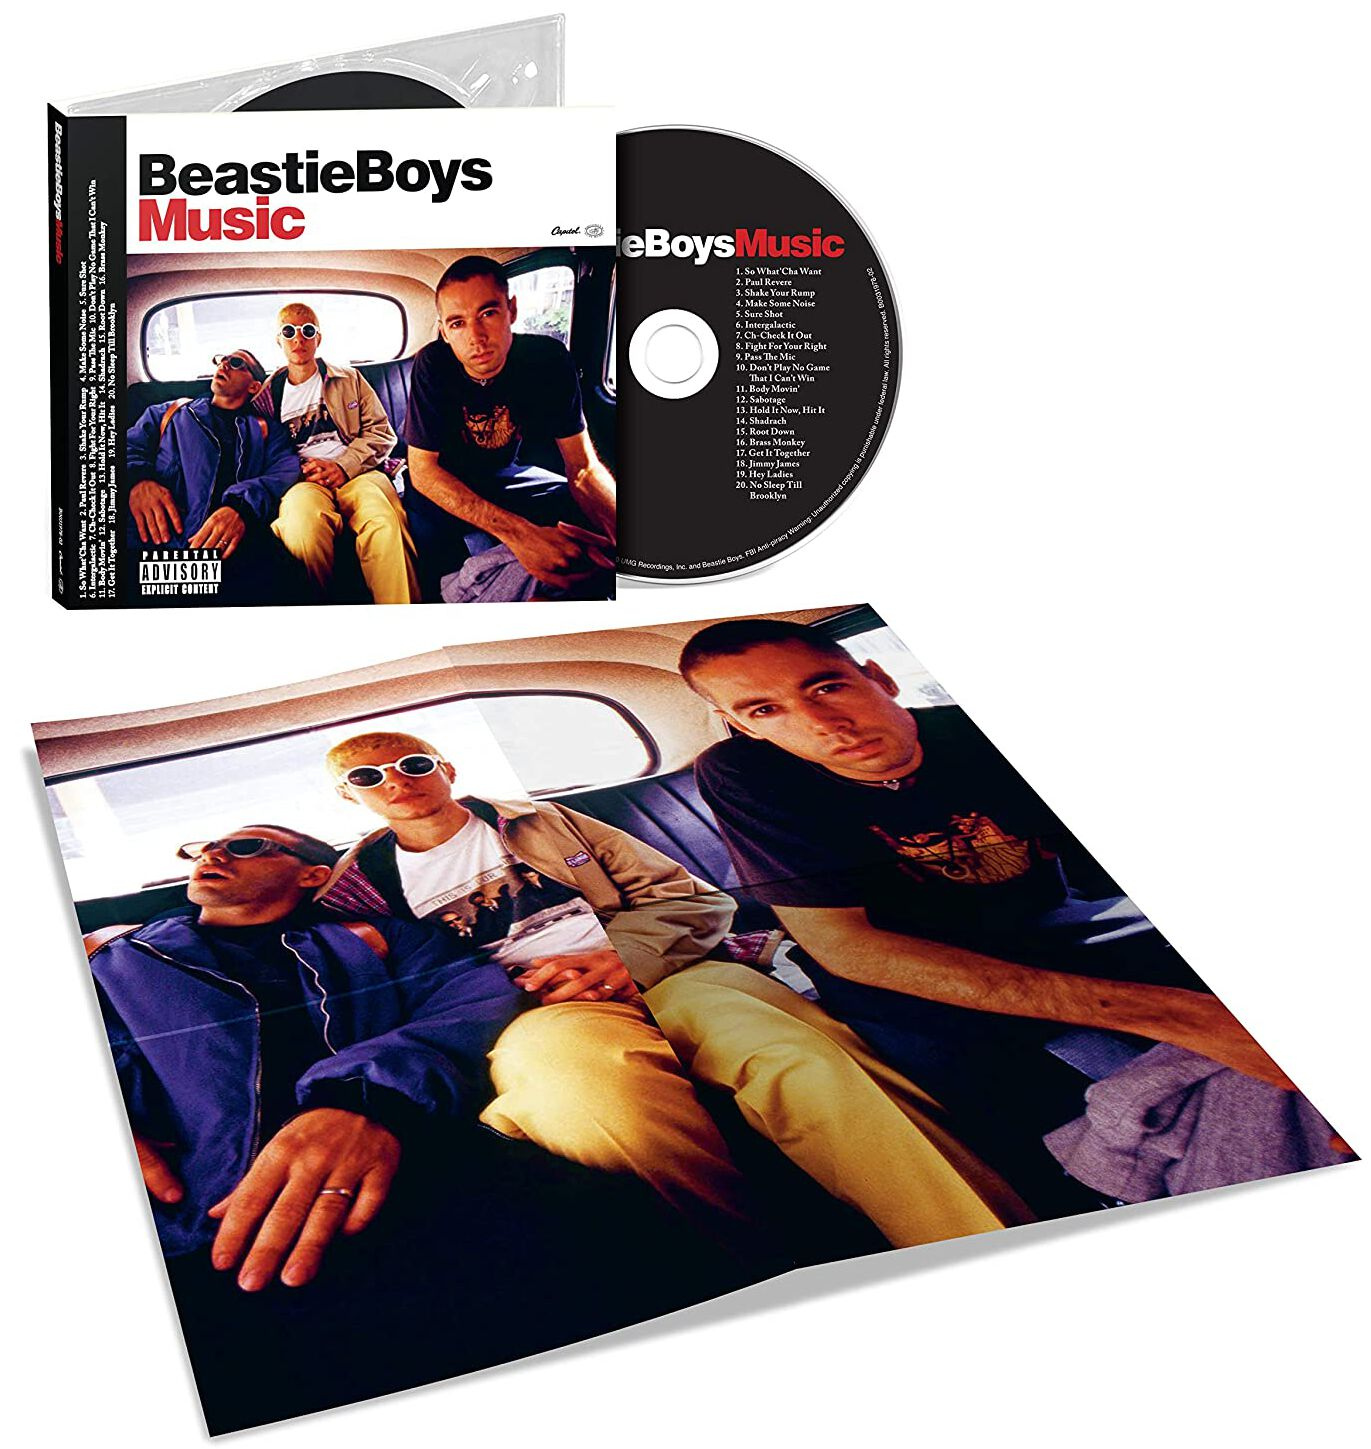 Image of Beastie Boys Beastie Boys Music CD Standard